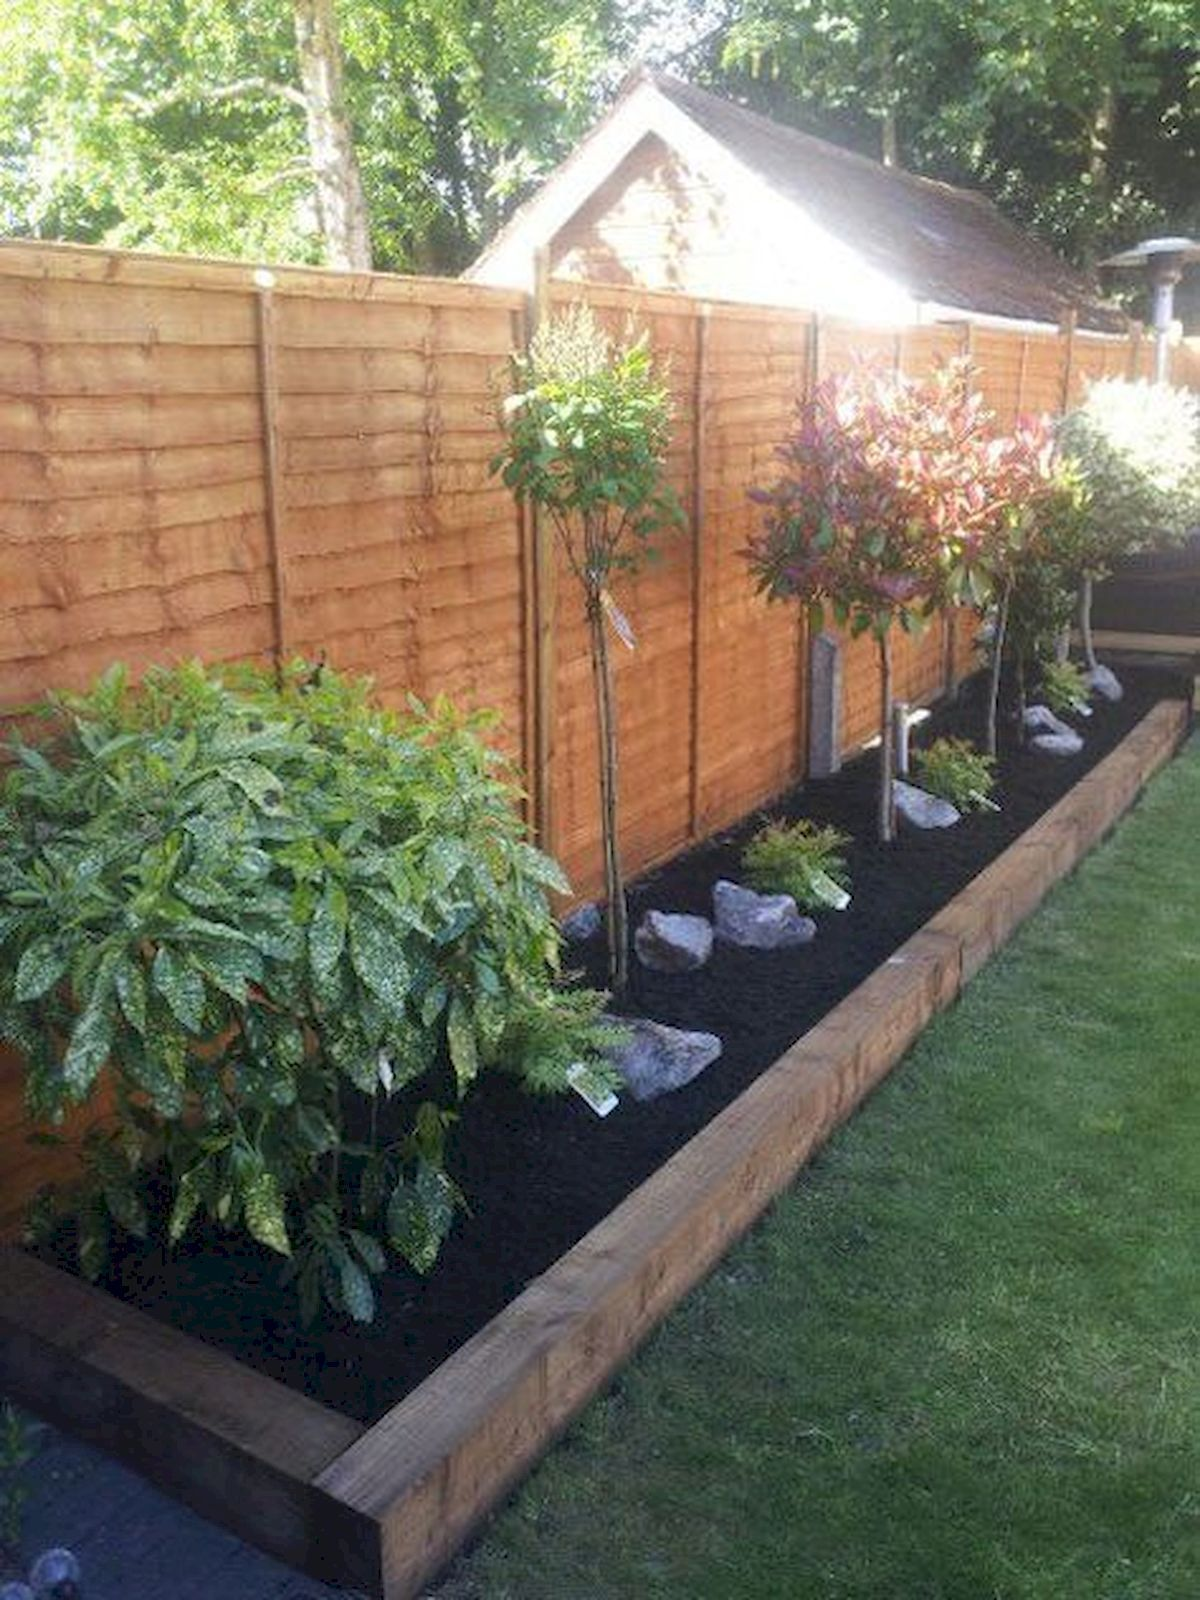 Latest Trends in Decorating Outdoor Living Spaces, 20 Modern Yard Landscaping Ideas -   14 garden design Fence outdoor living ideas